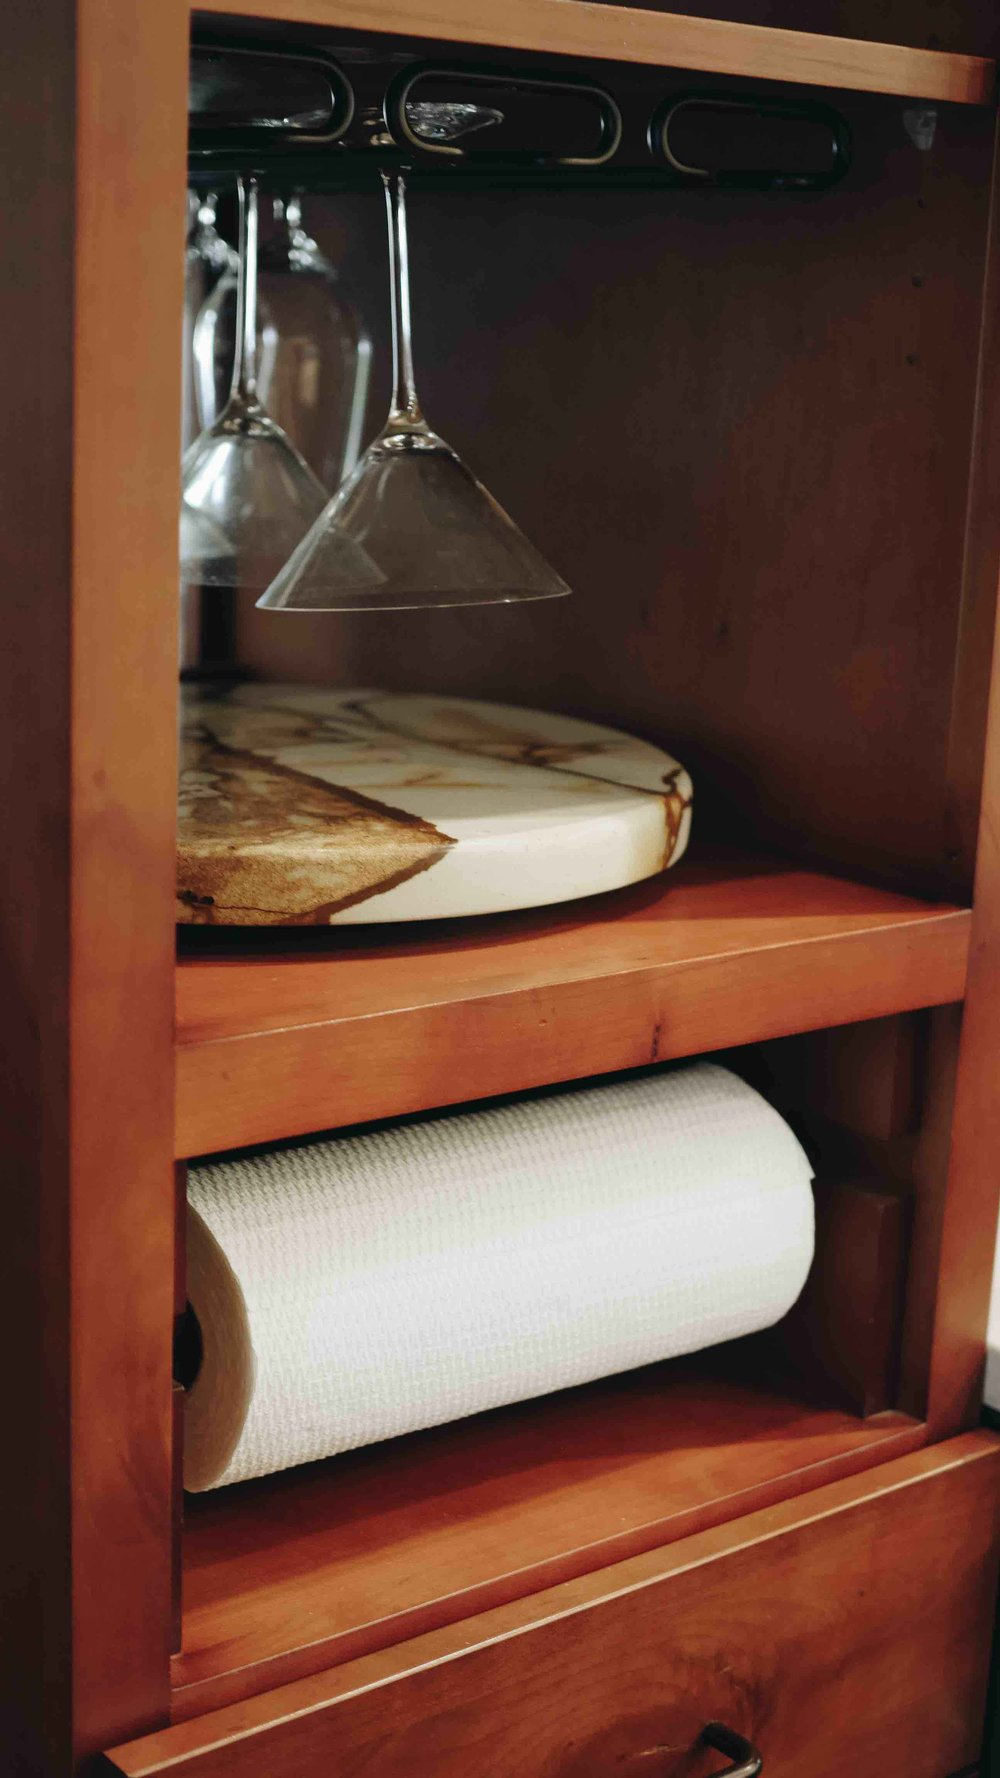 180 Spaces | Interior Design Turnarounds - Accessible yet tucked-away paper towel cubby !